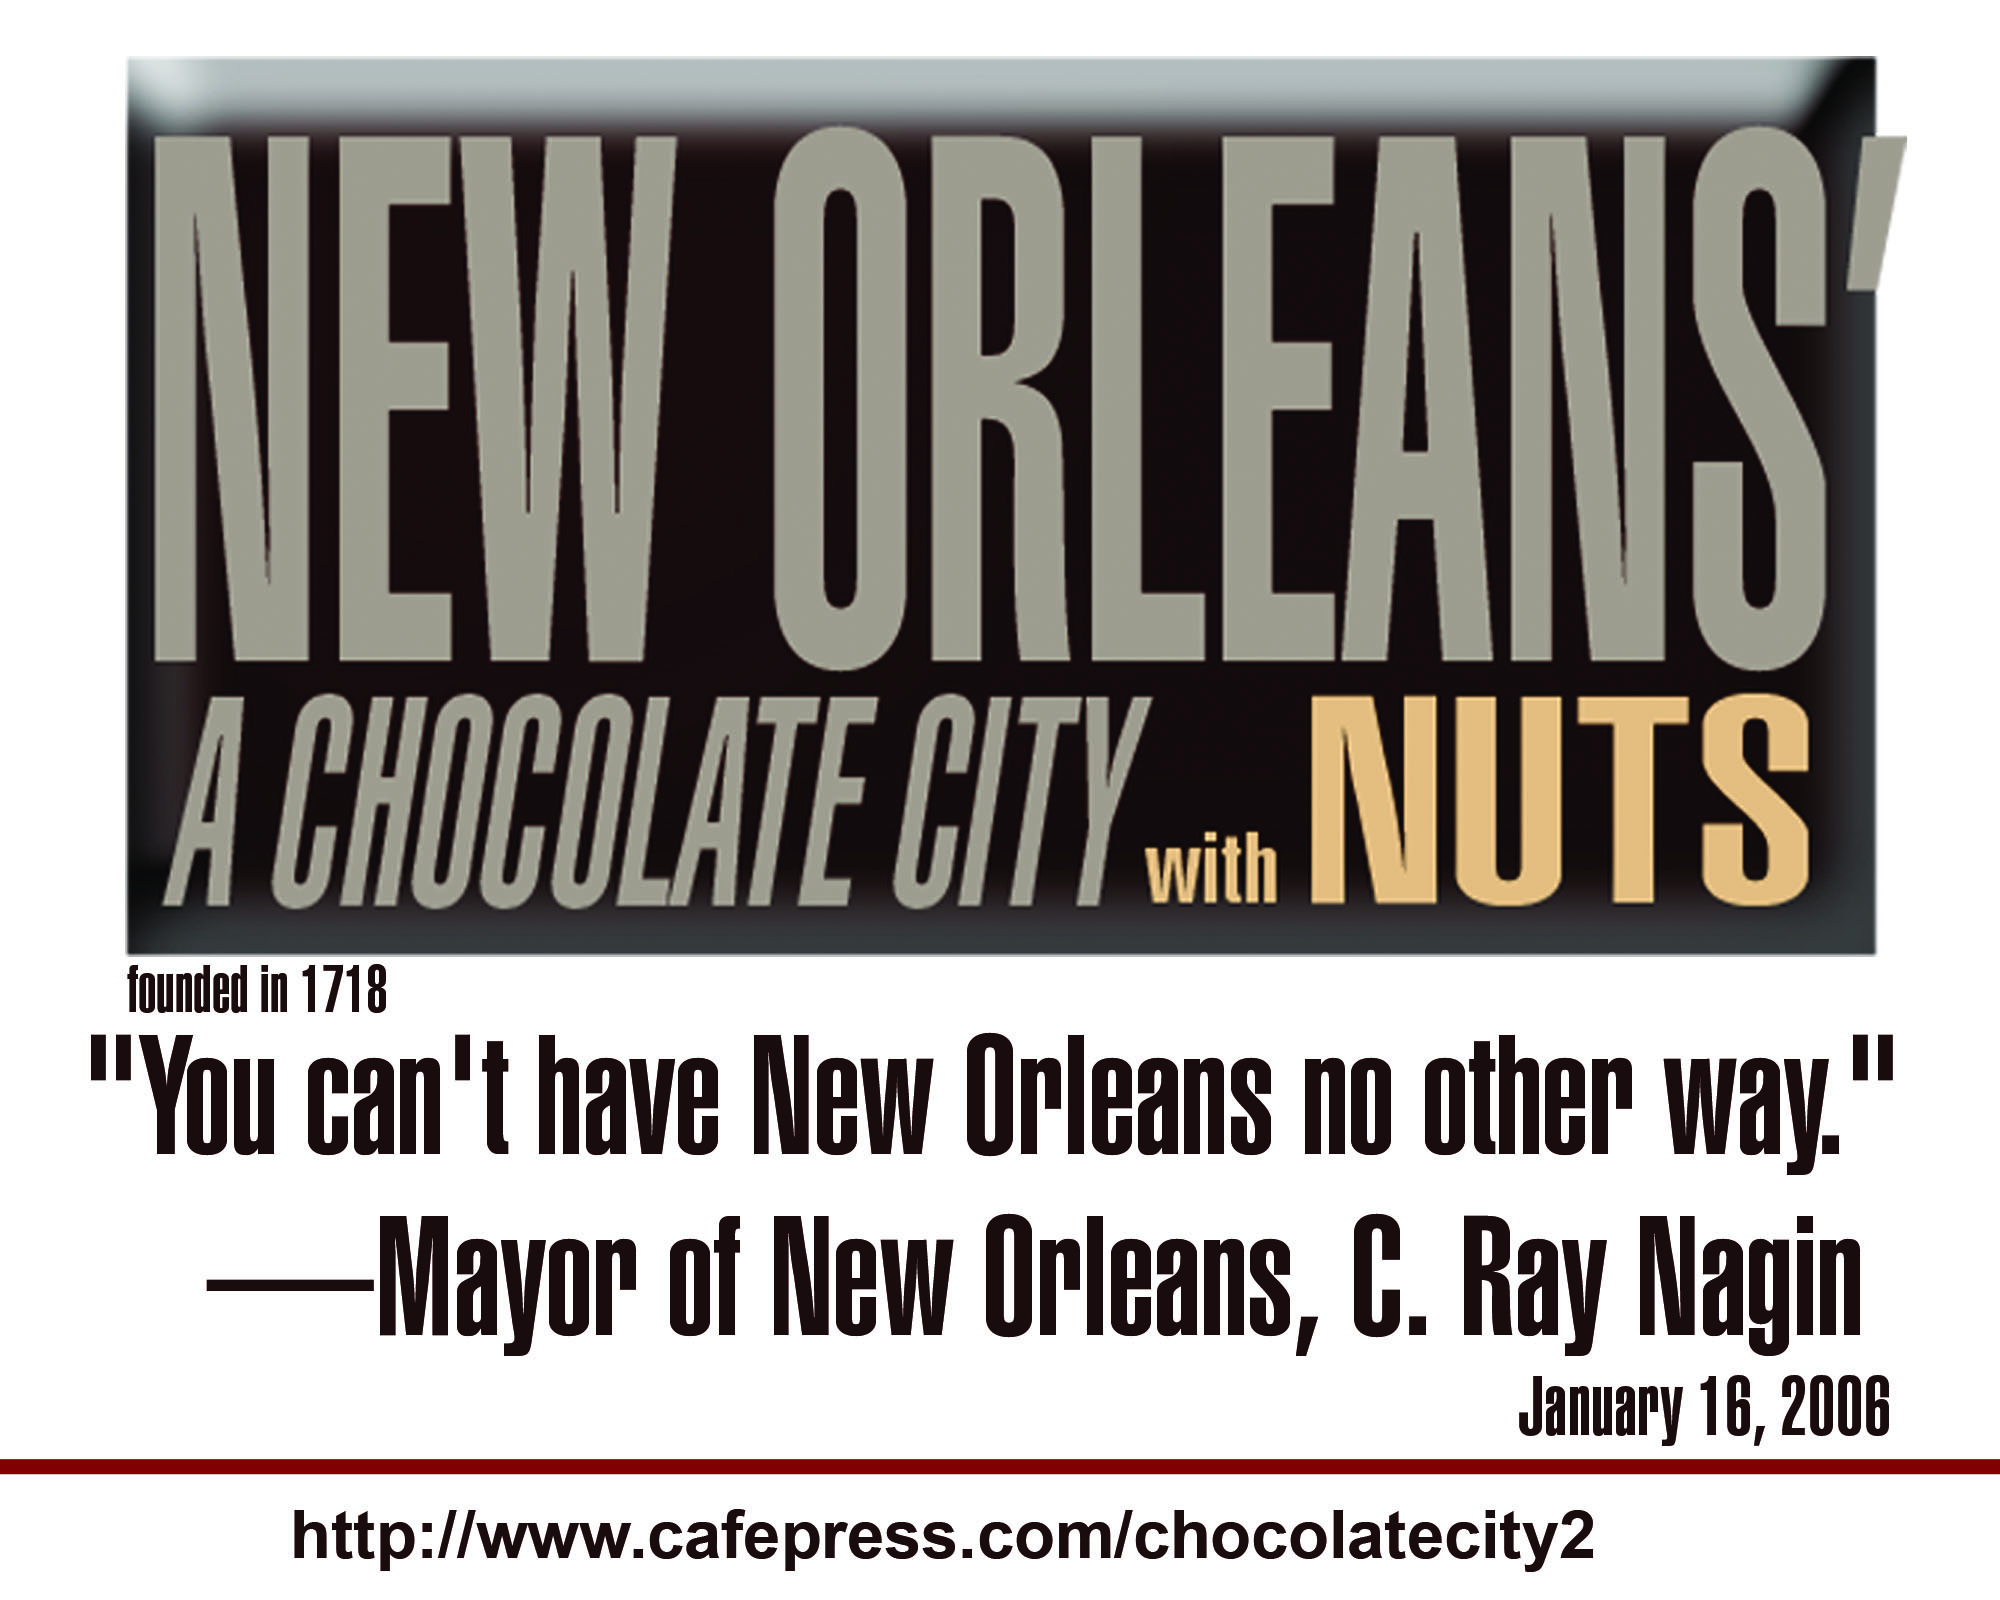 New Orleans' Chocolate City Shirts Wear Well Across the Country